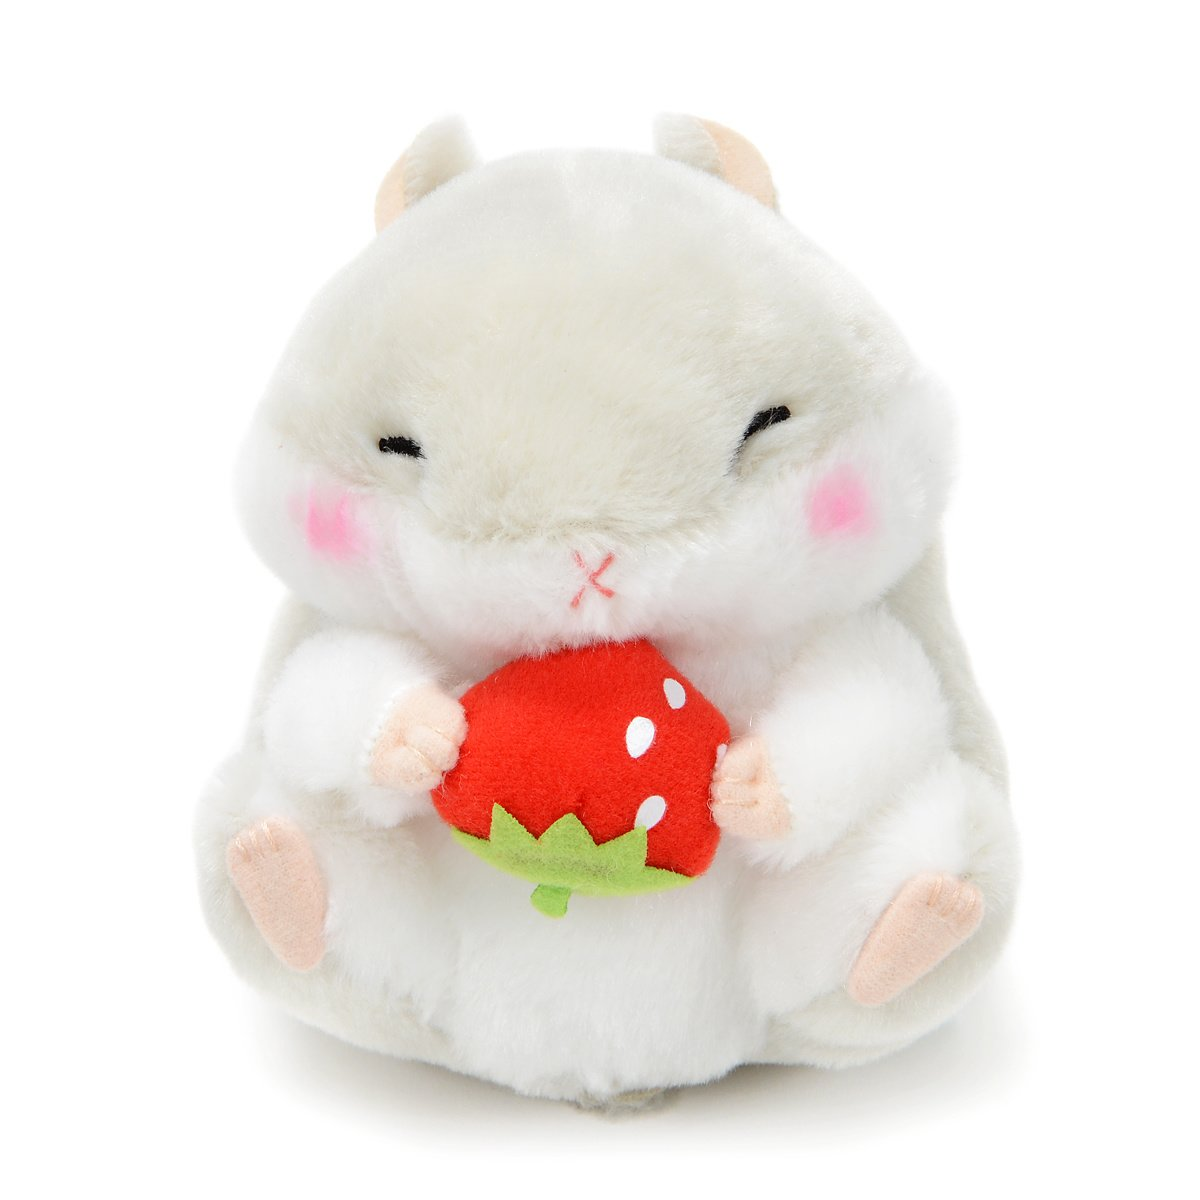 Plush Hamster, Amuse, Coroham Coron, Ichigo Hamster Plush Collection Jan-Kun Grey, 5 Inches